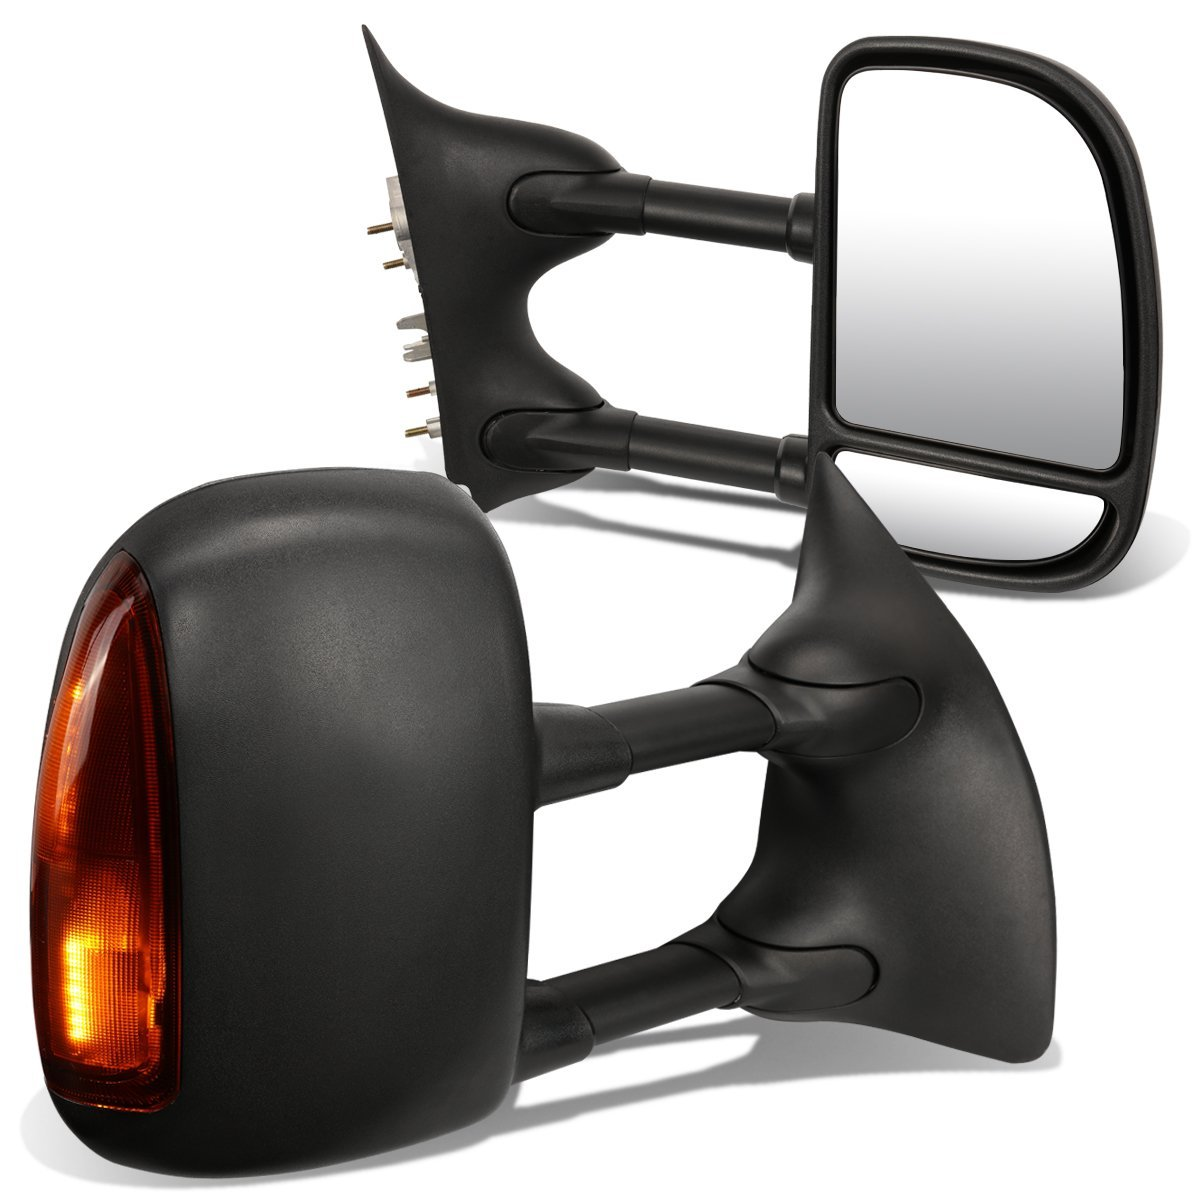 FOR 1999-2007 FORD F250 F350 F450 SUPER DUTY PAIR MANUAL SIDE VIEW TOWING MIRROR